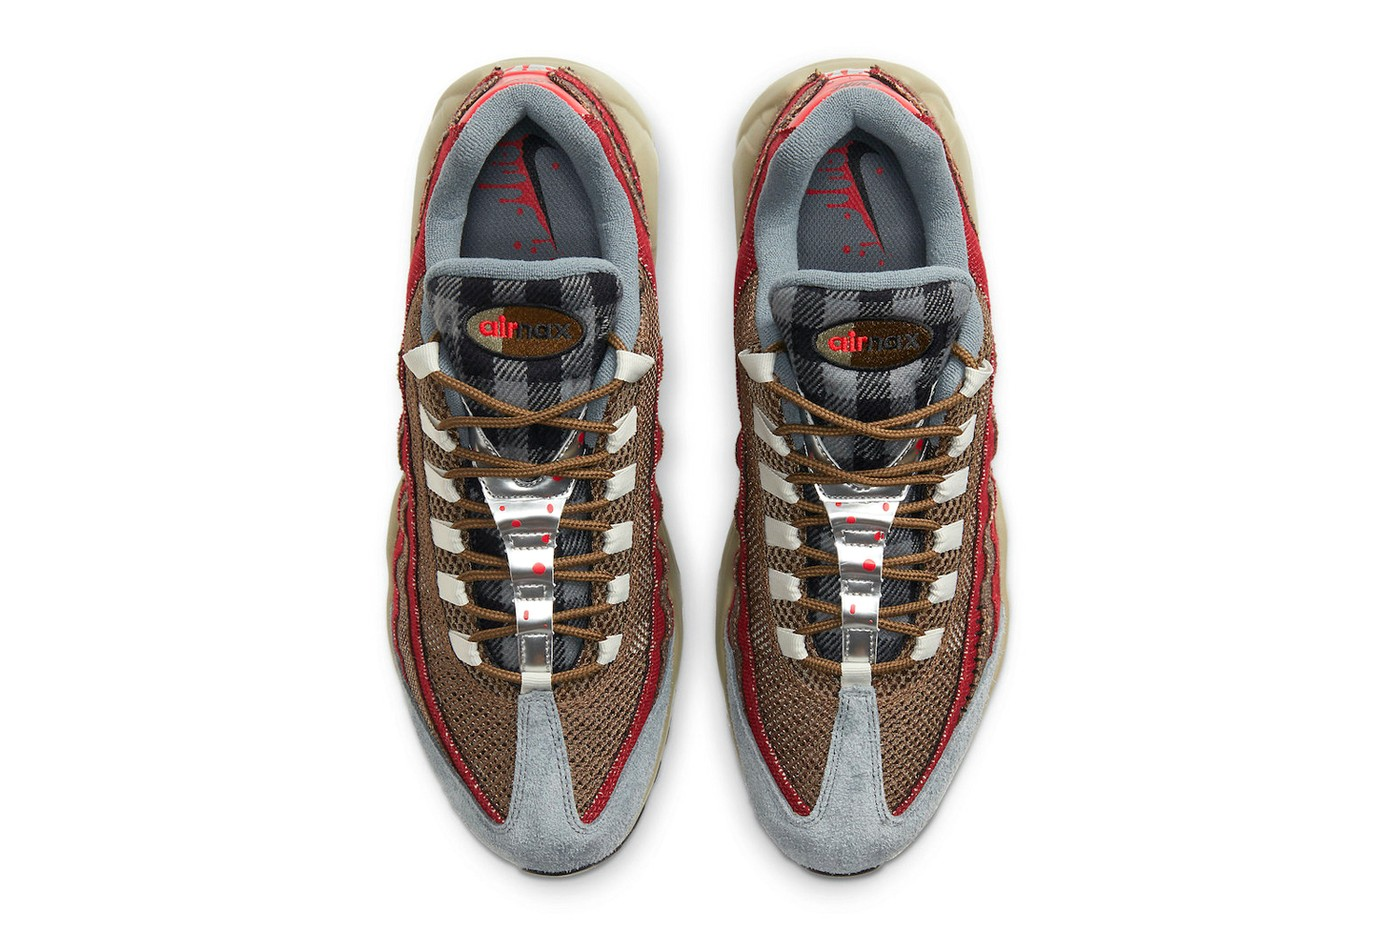 Nike-Air-Max-95-Freddy-Krueger-Hover-View